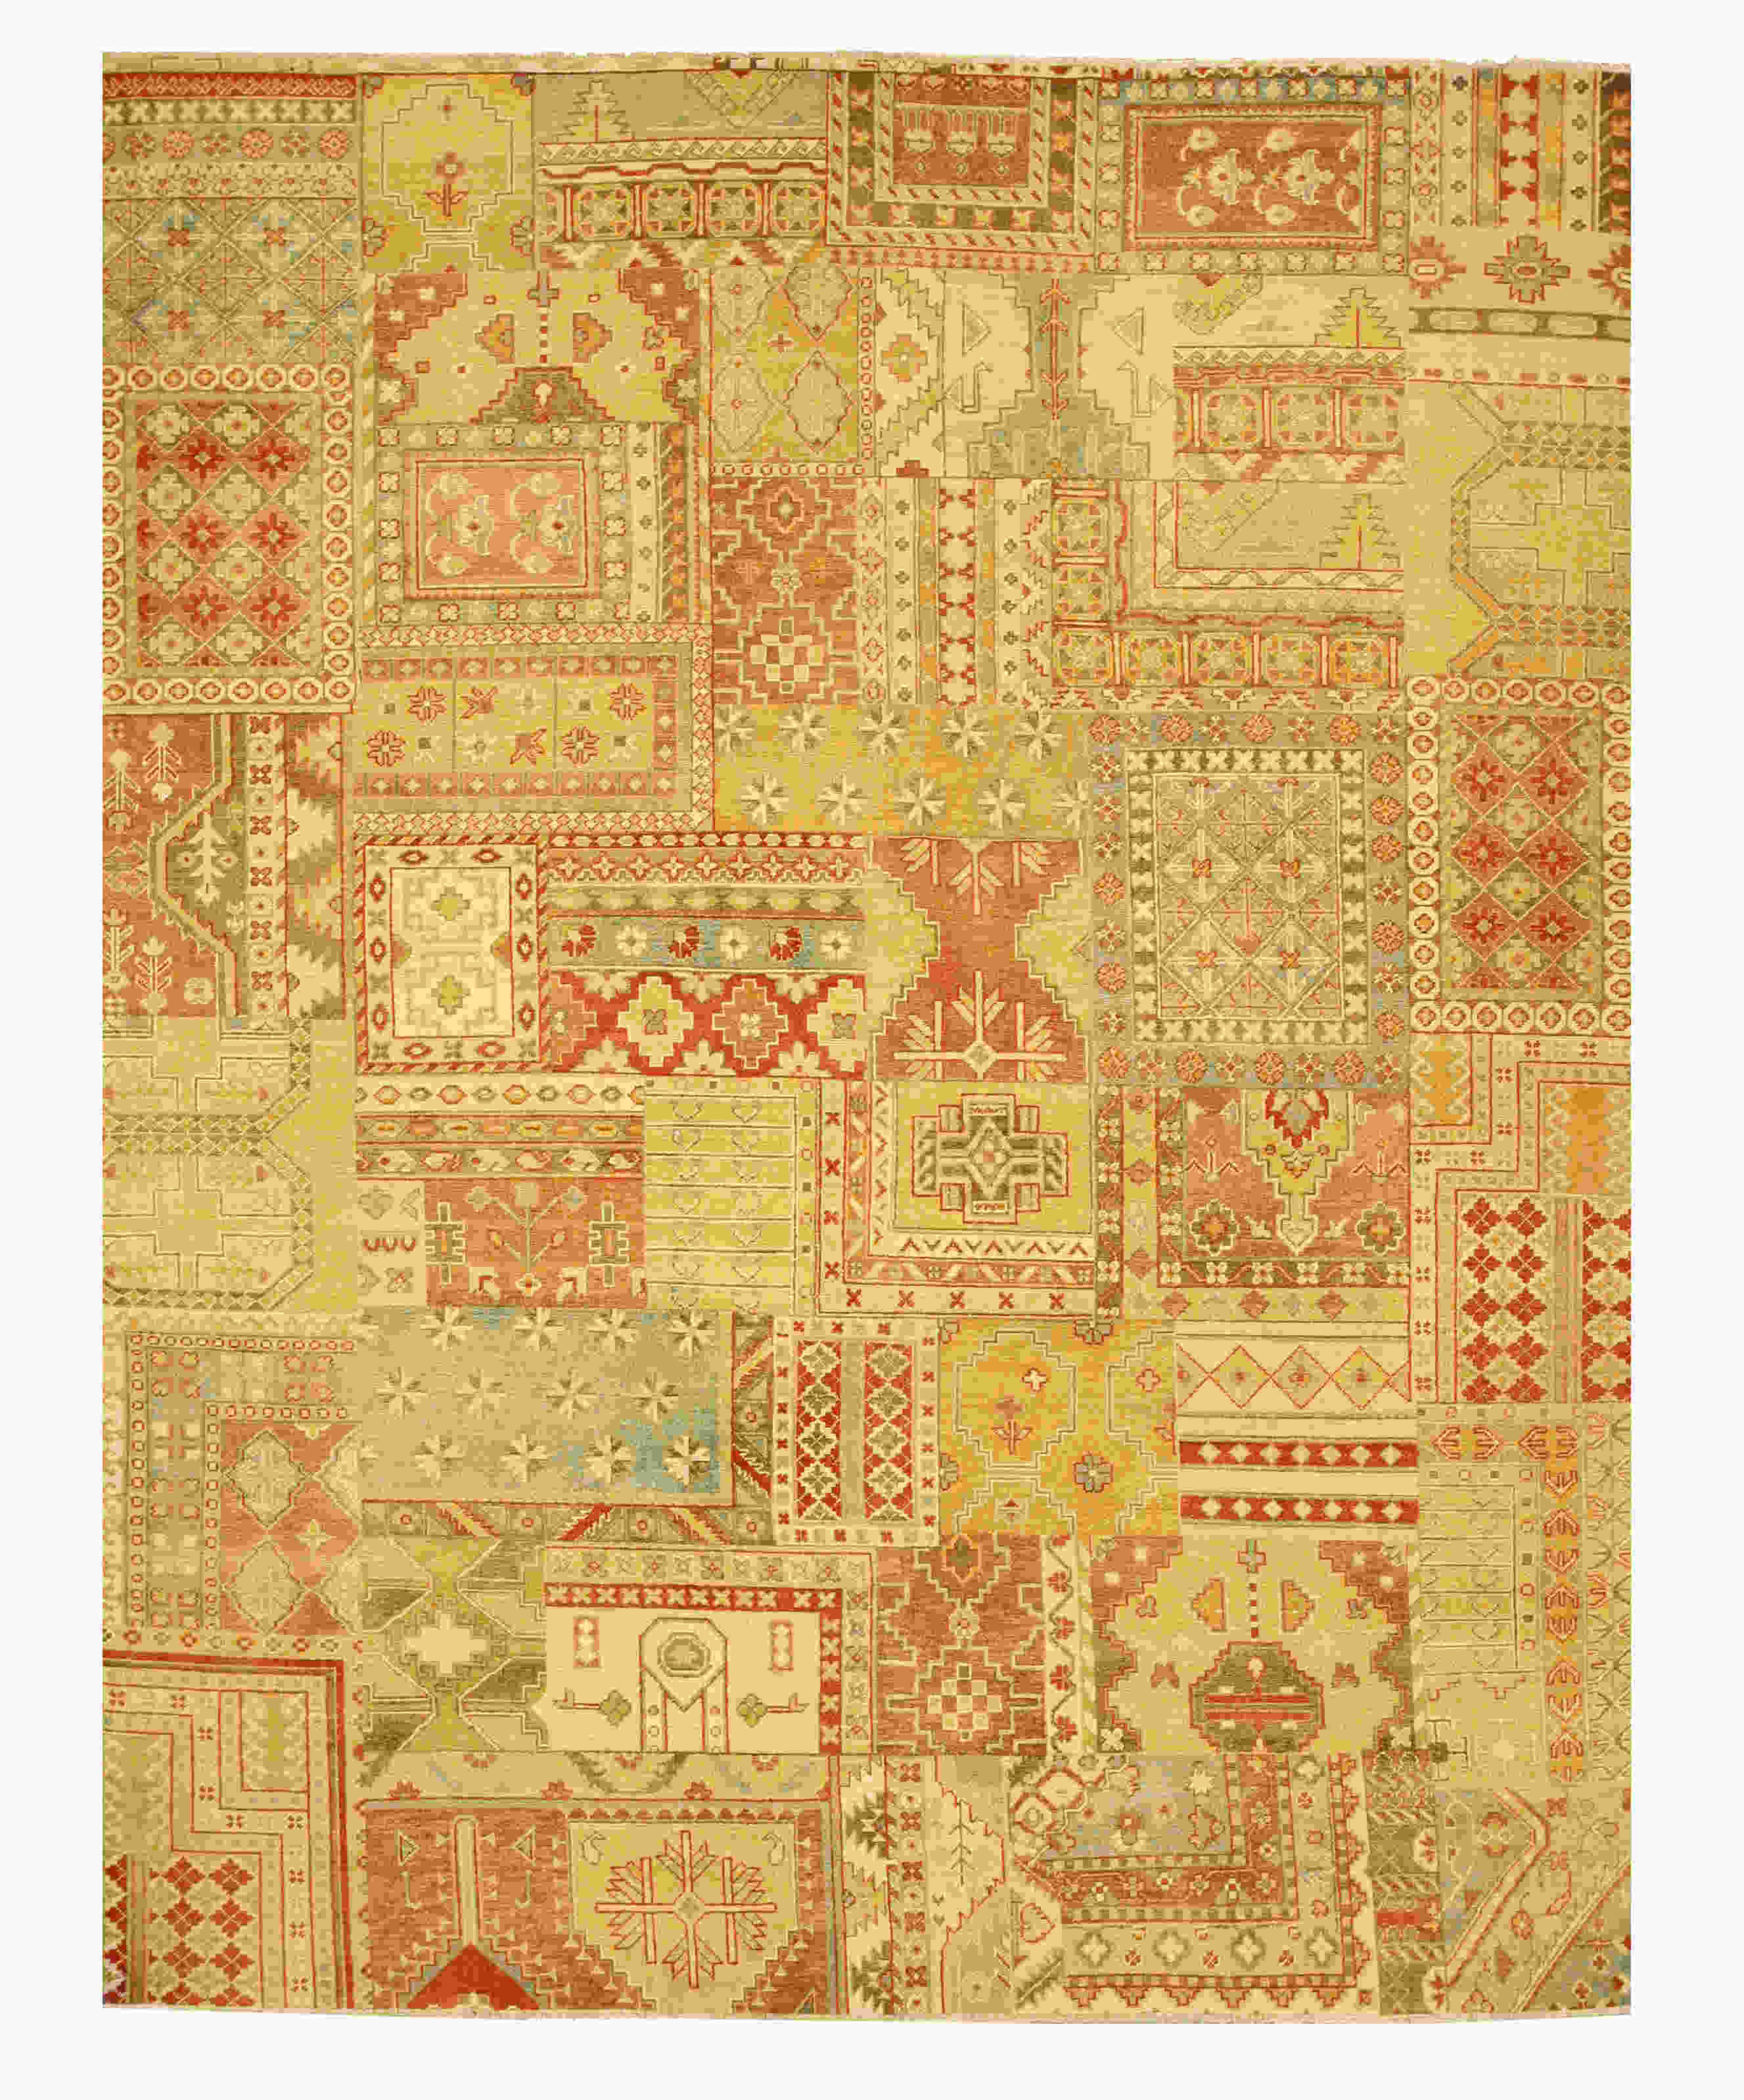 Eorc 9027 Multi Hand Knotted Wool Patch Rug